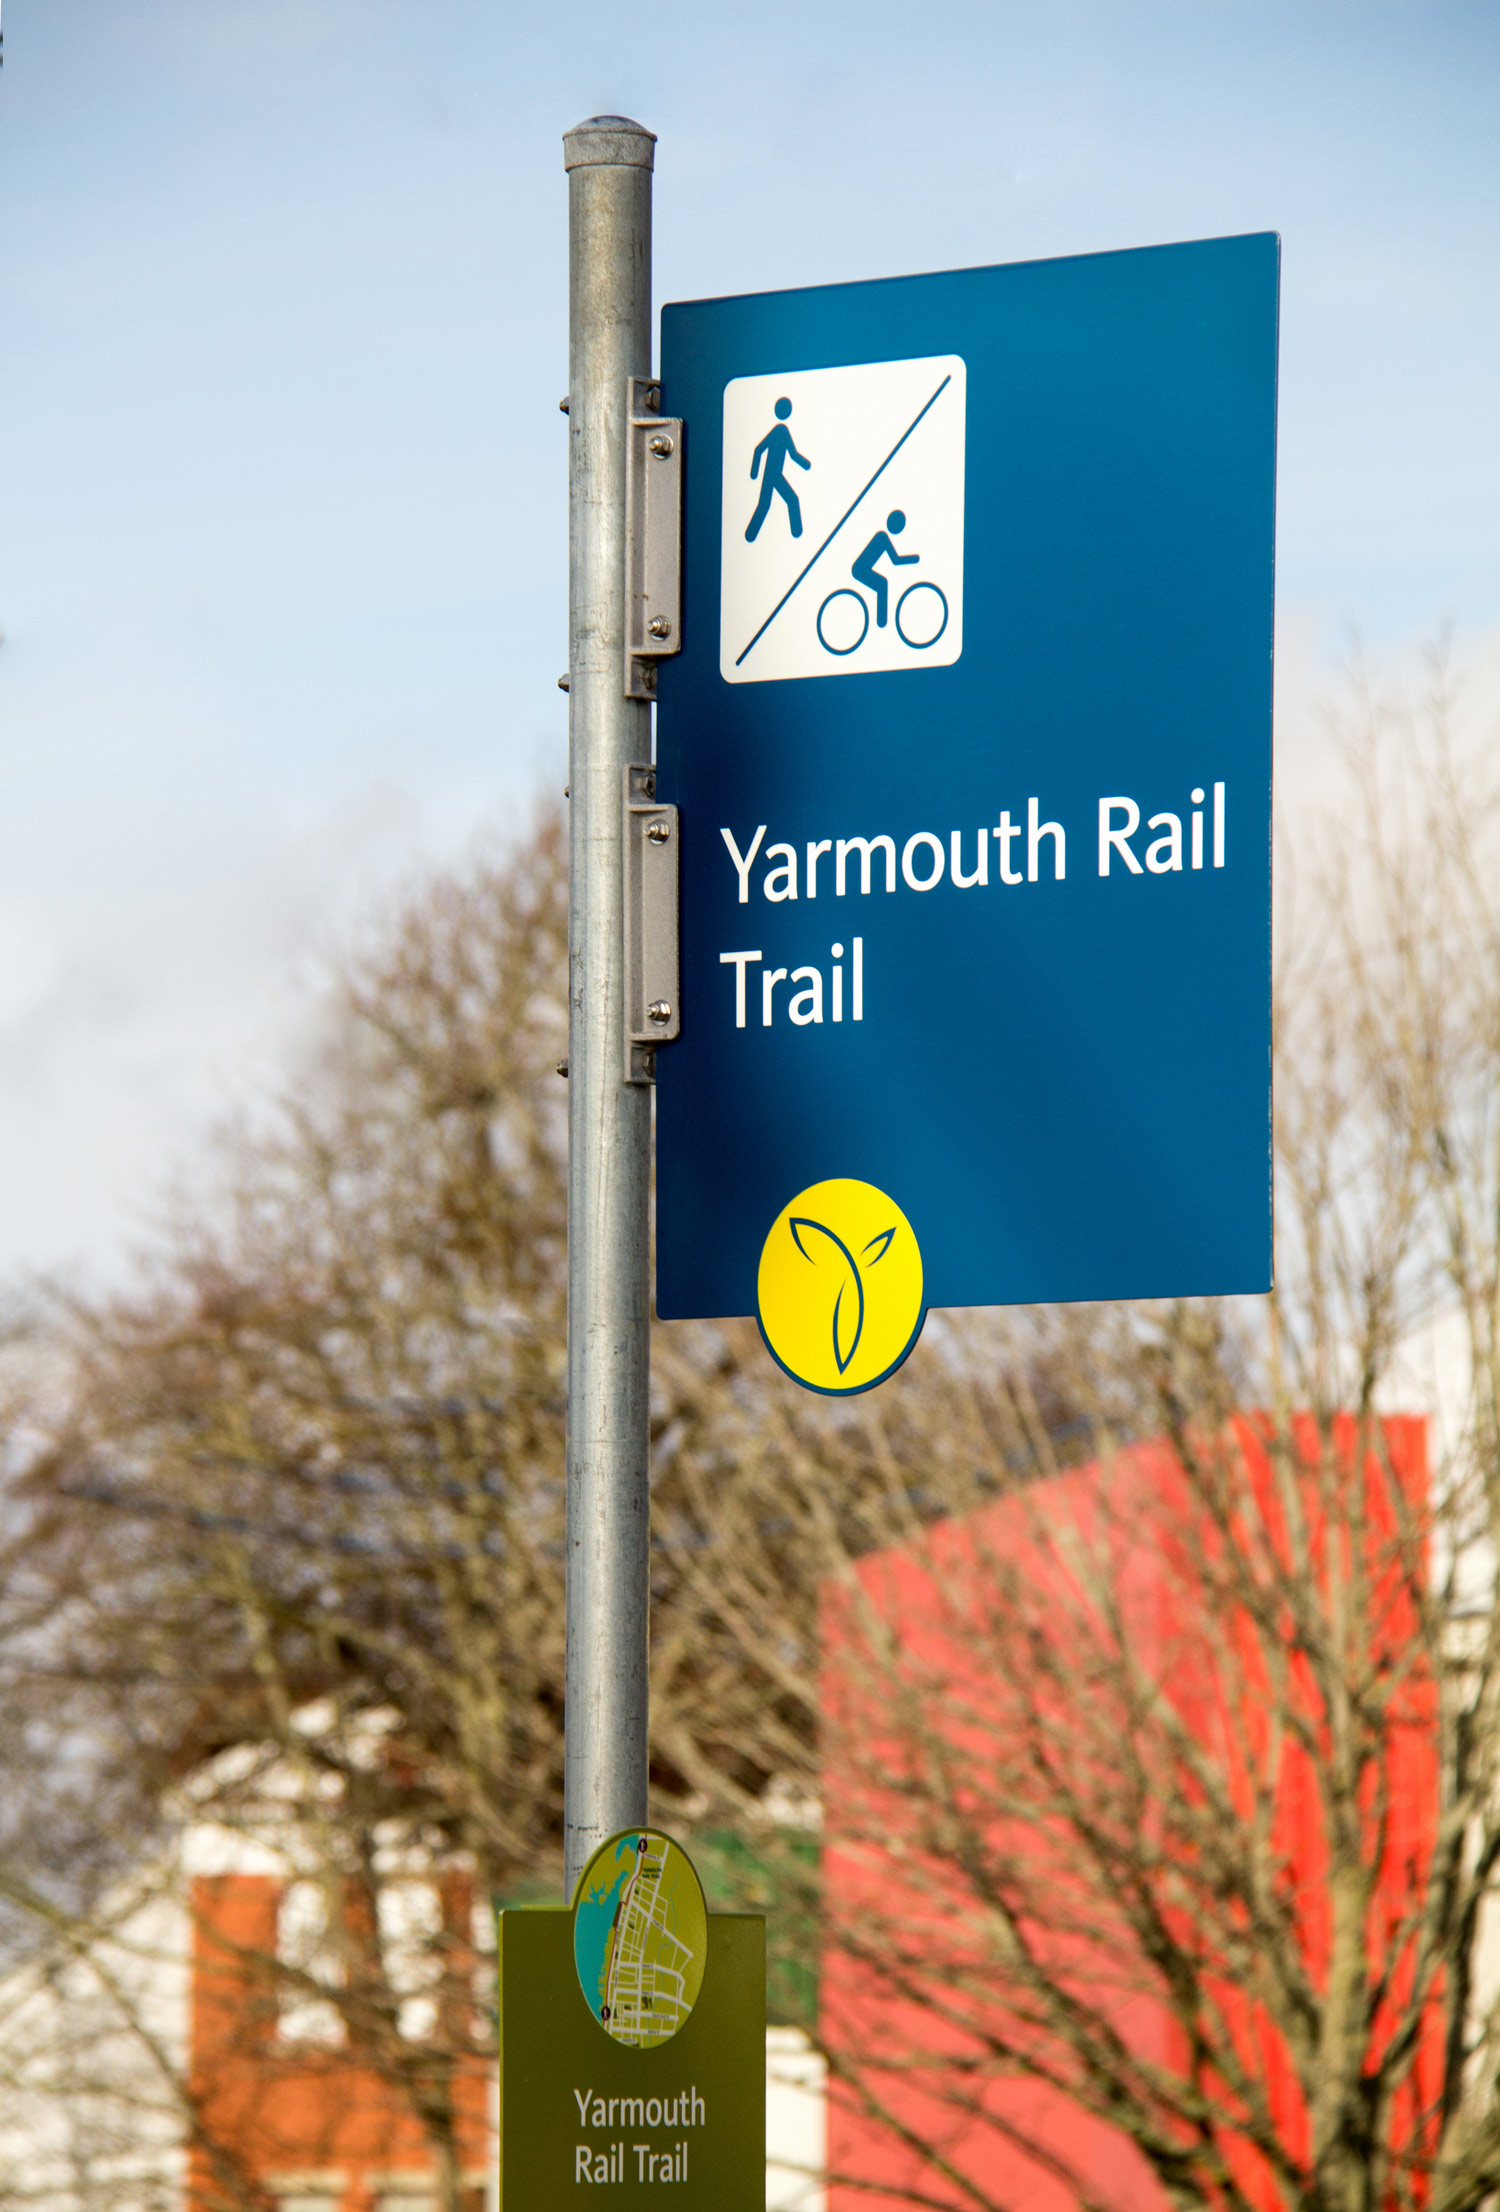 ACTIVE TRANSPORTATION From an active transportation network of trails to park identification signage, the system is meant to encouraging physical activity within the vast array of offerings.